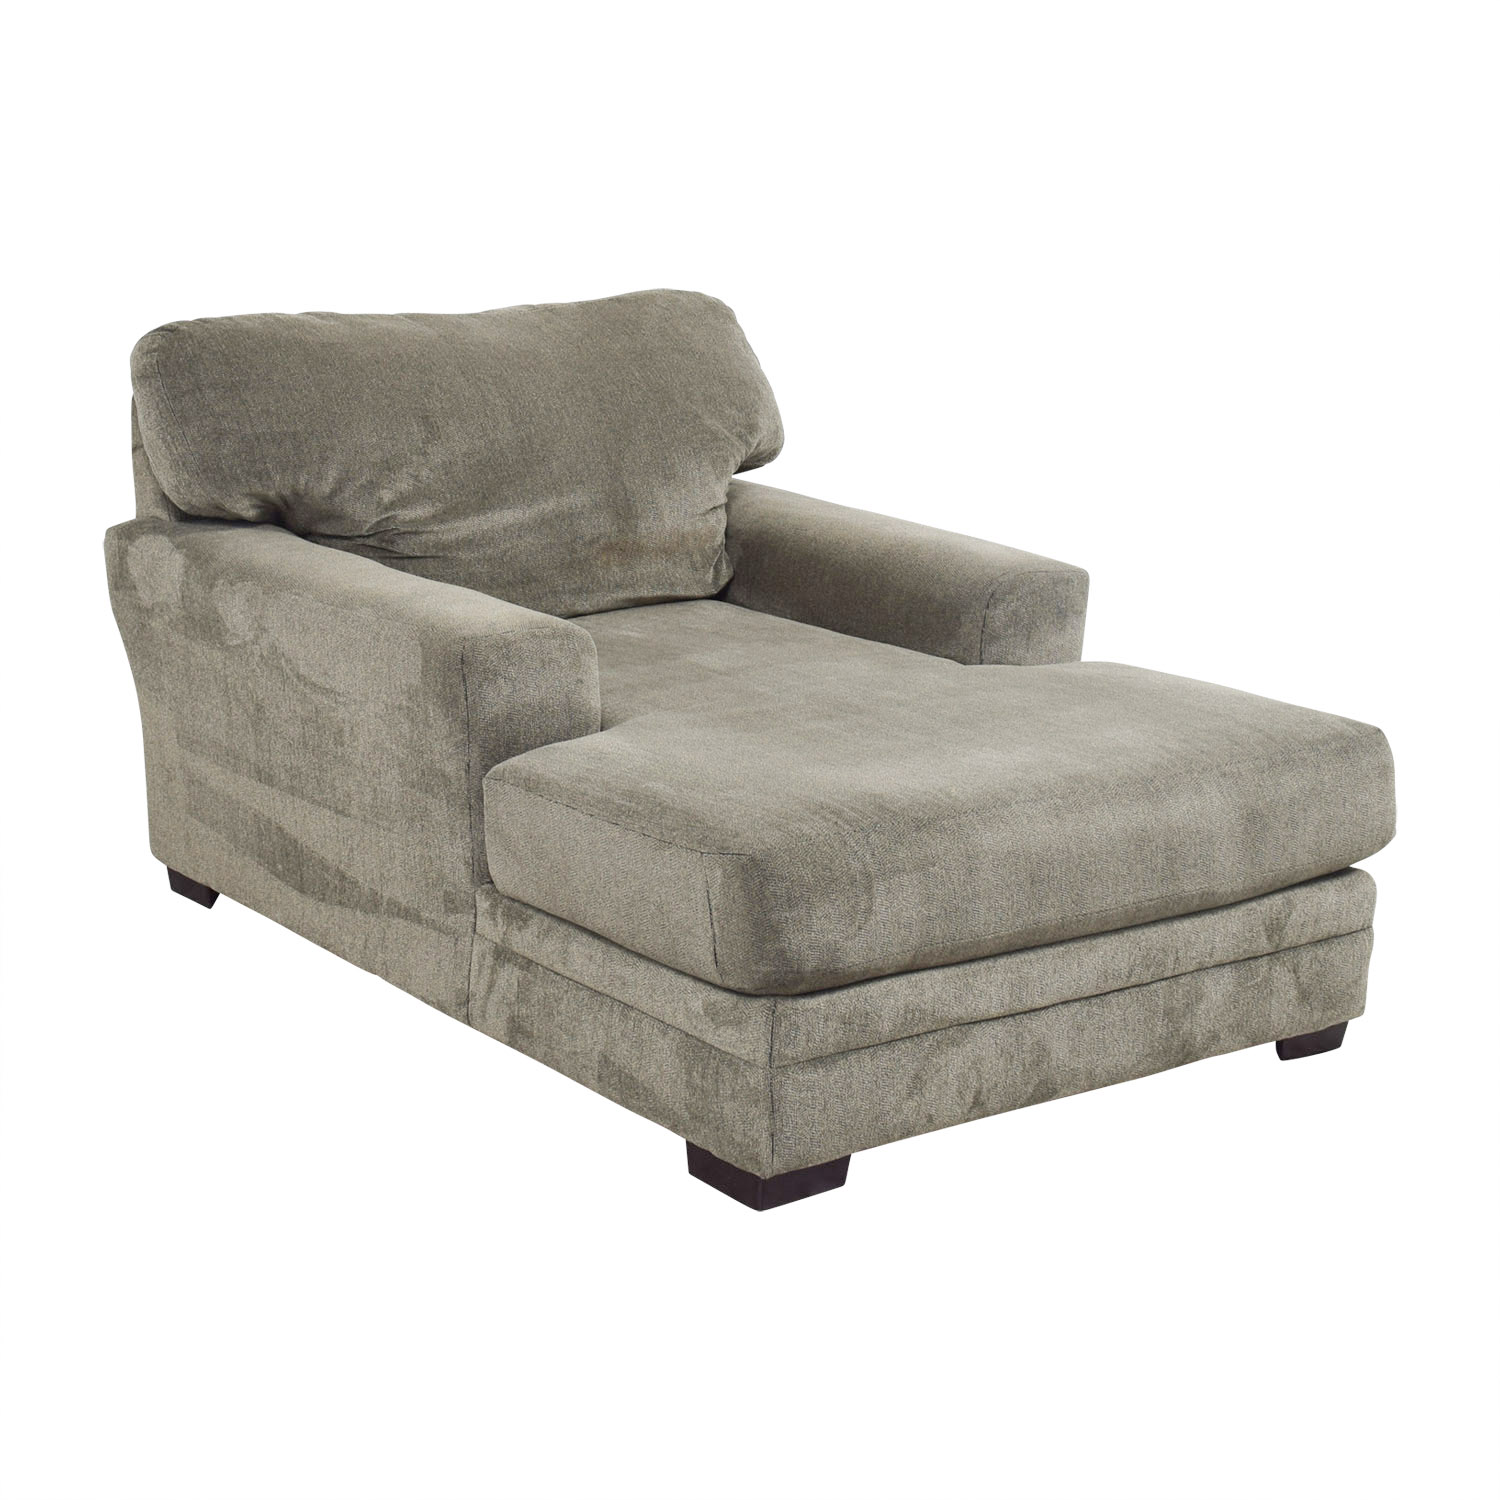 83 Off Bob S Furniture Bob S Furniture Grey Chaise